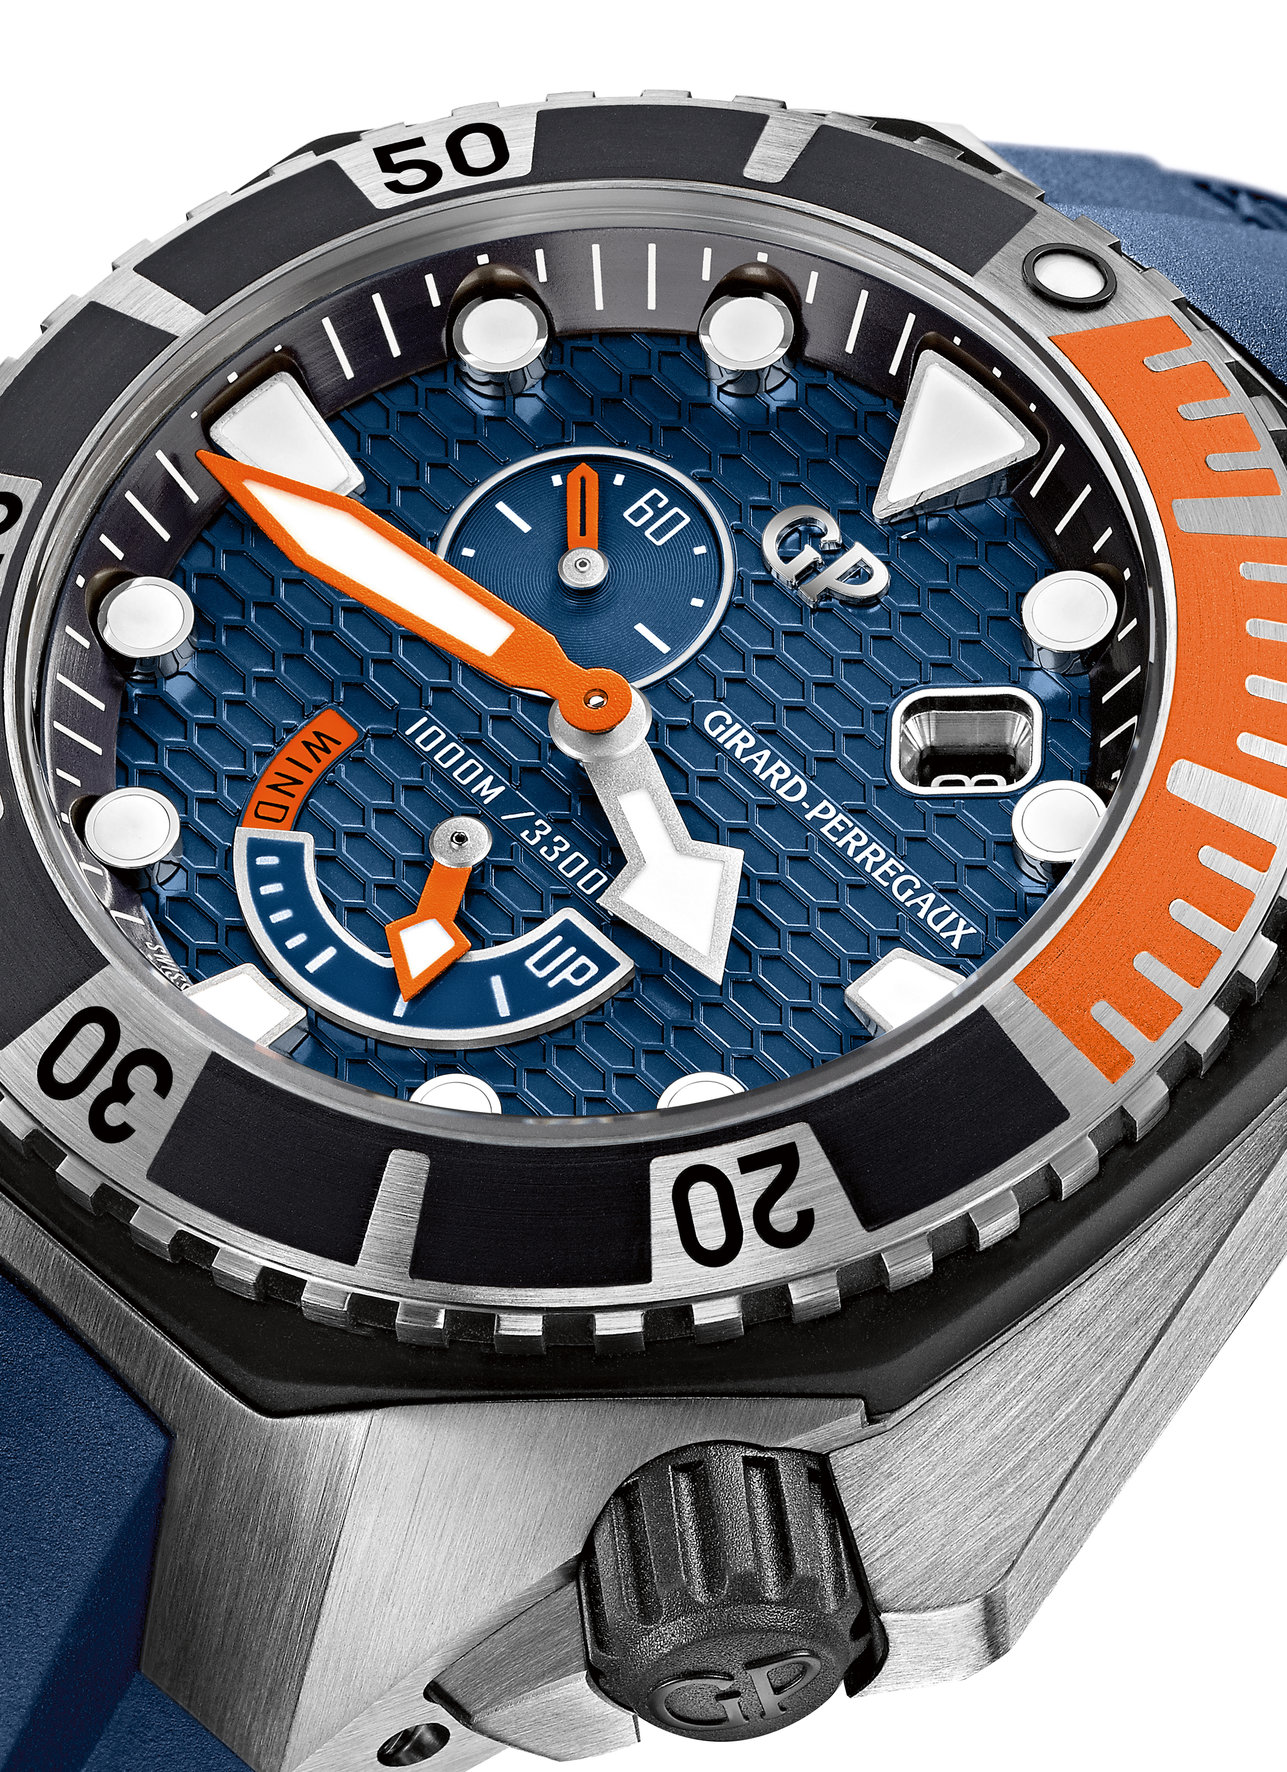 Girard-Perregaux Sea Hawk Blue & Orange - Dial